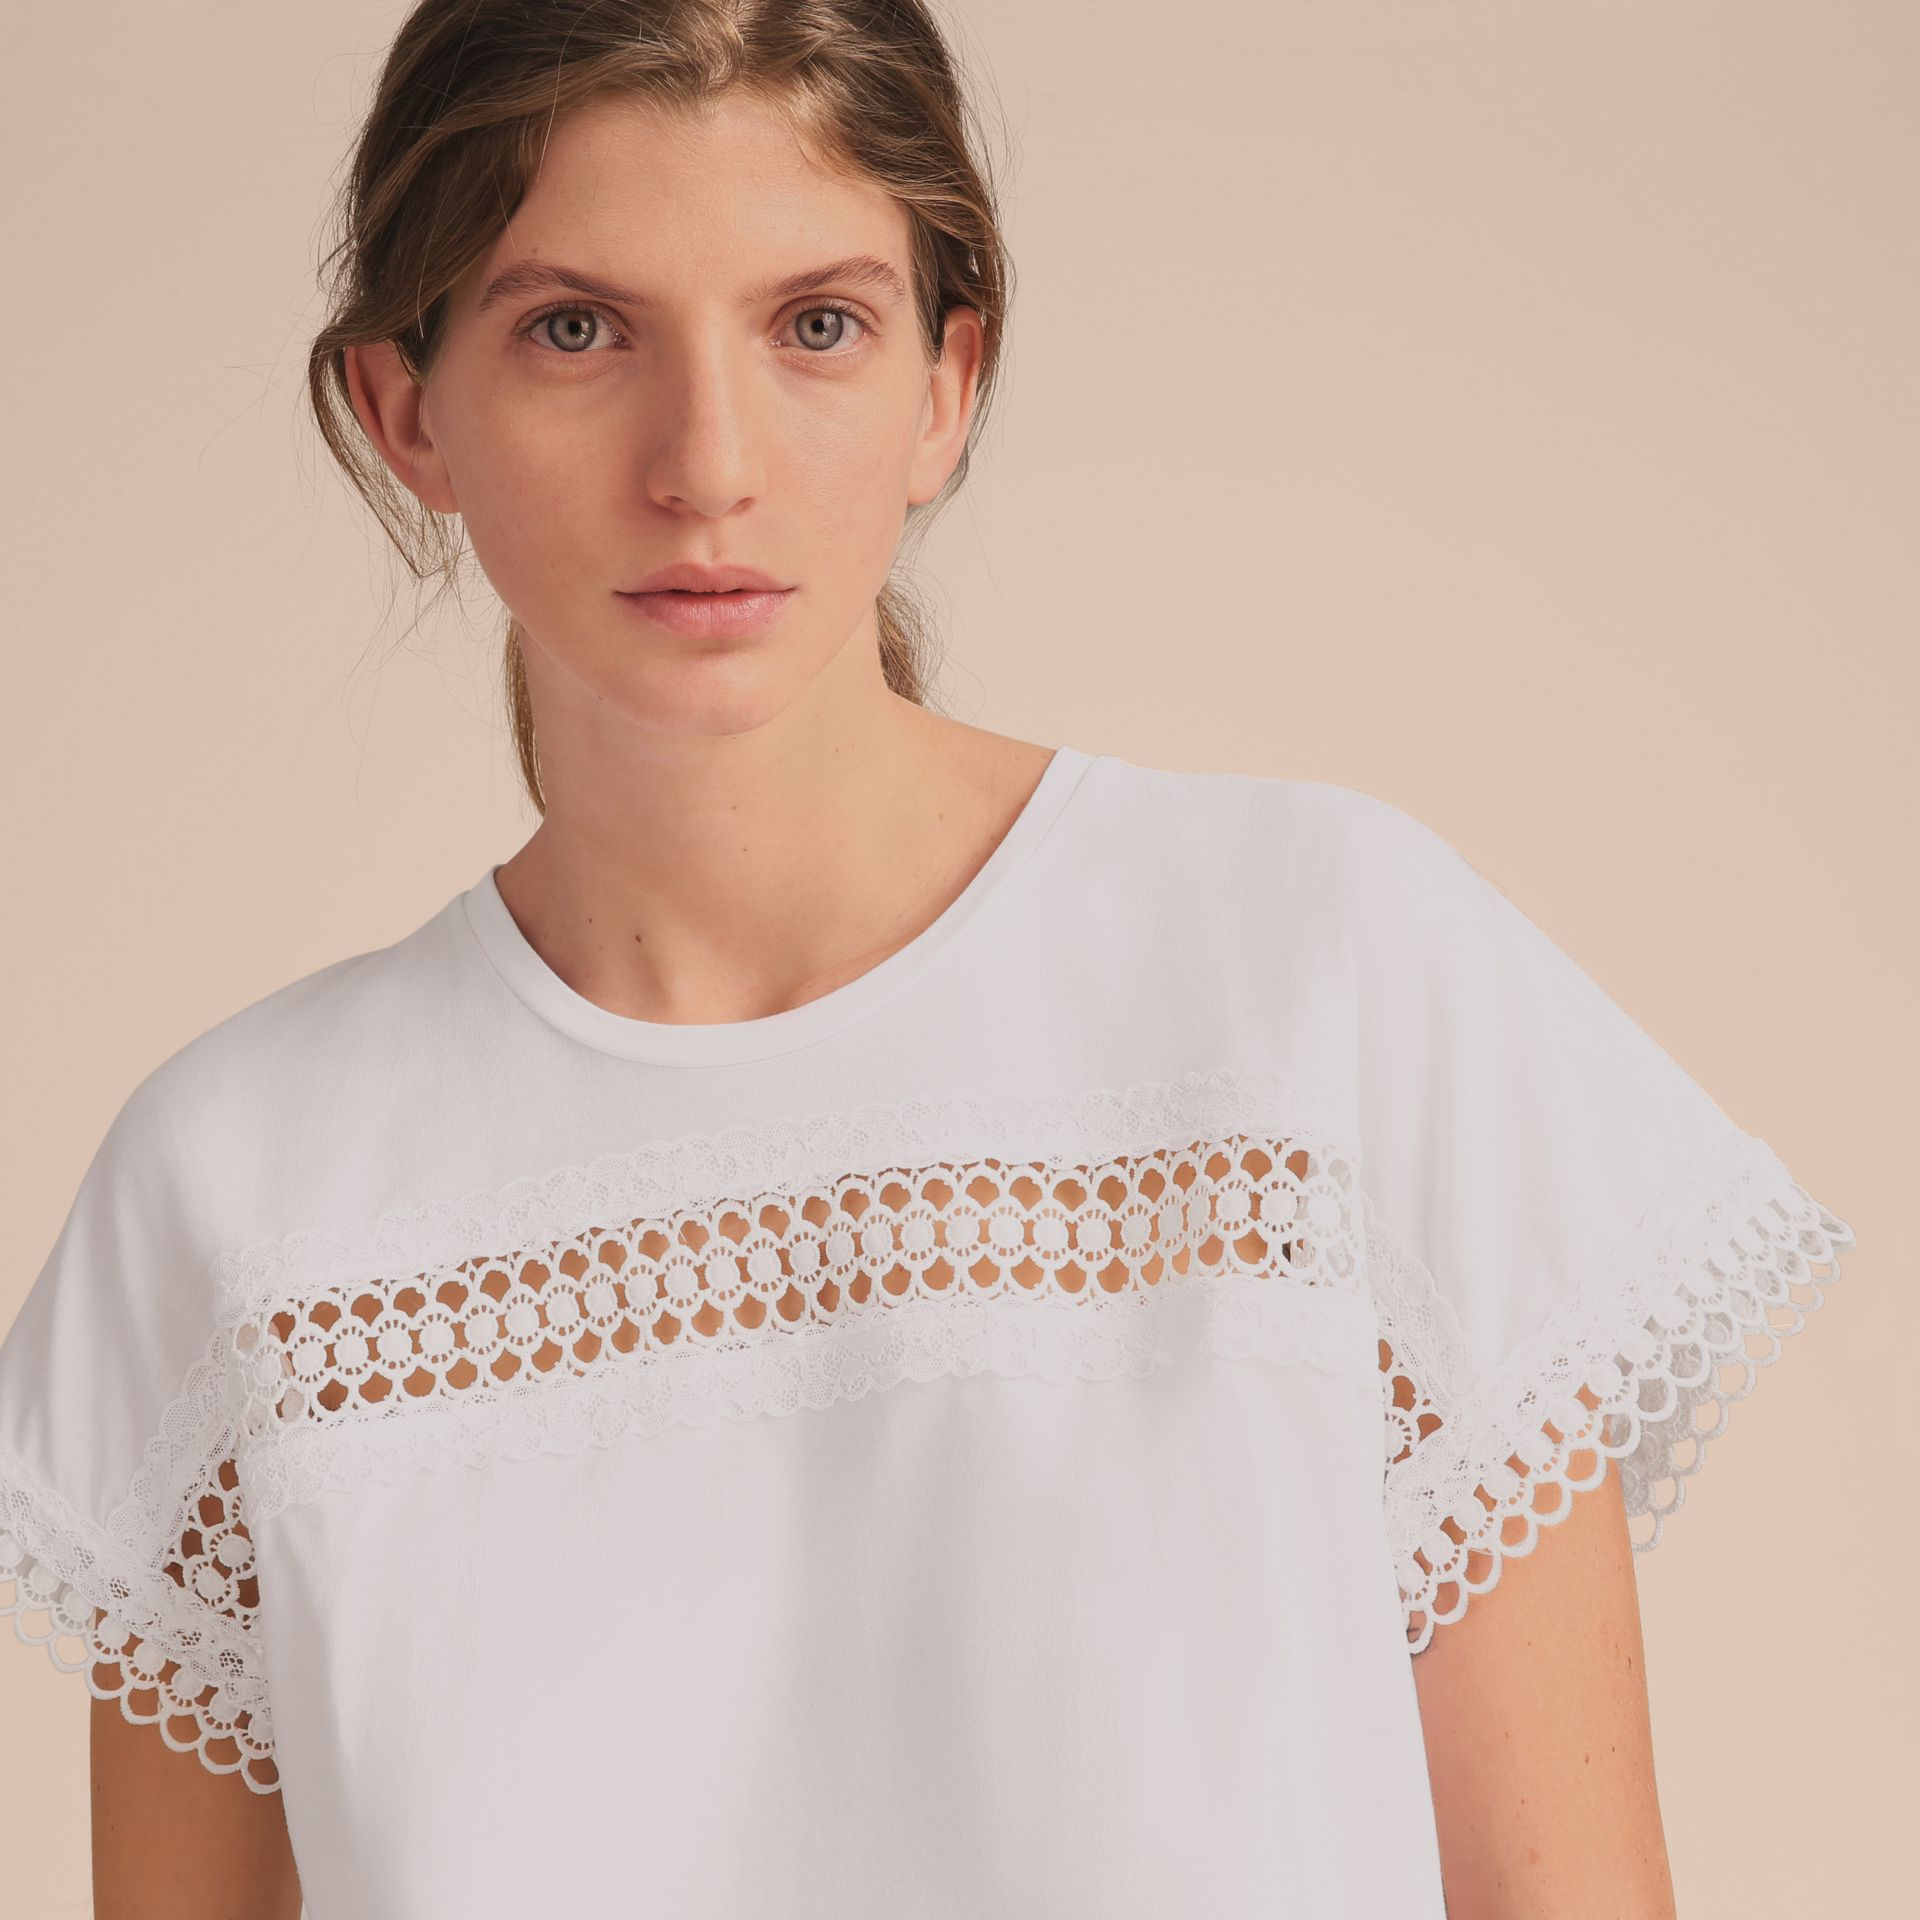 Lace Detail Cotton T-shirt White - gallery image 5